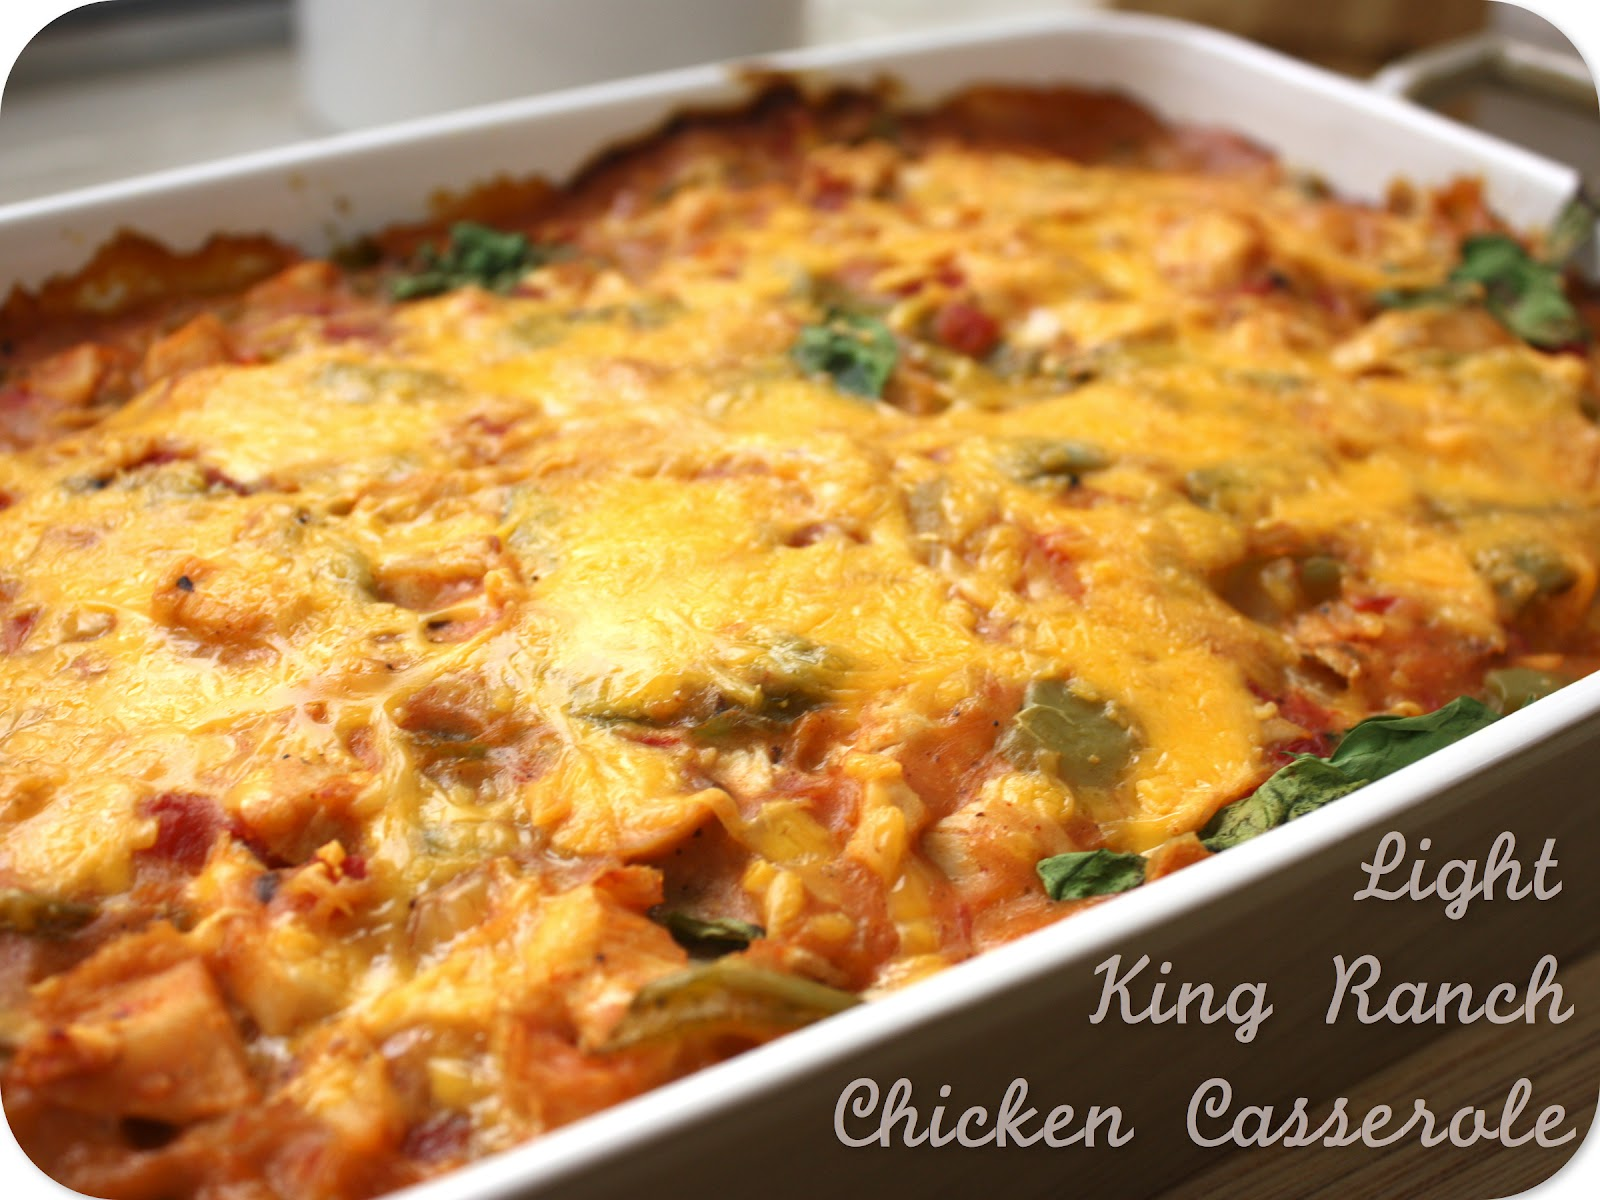 king ranch casserole Pulled pork king ranch casserole the classic casserole famous in texas gets a little bit of a makeover using tender juicy pulled pork layers of crisp tortillas, a chili powder spiked cream sauce with smokey tender pork, and melted cheese.